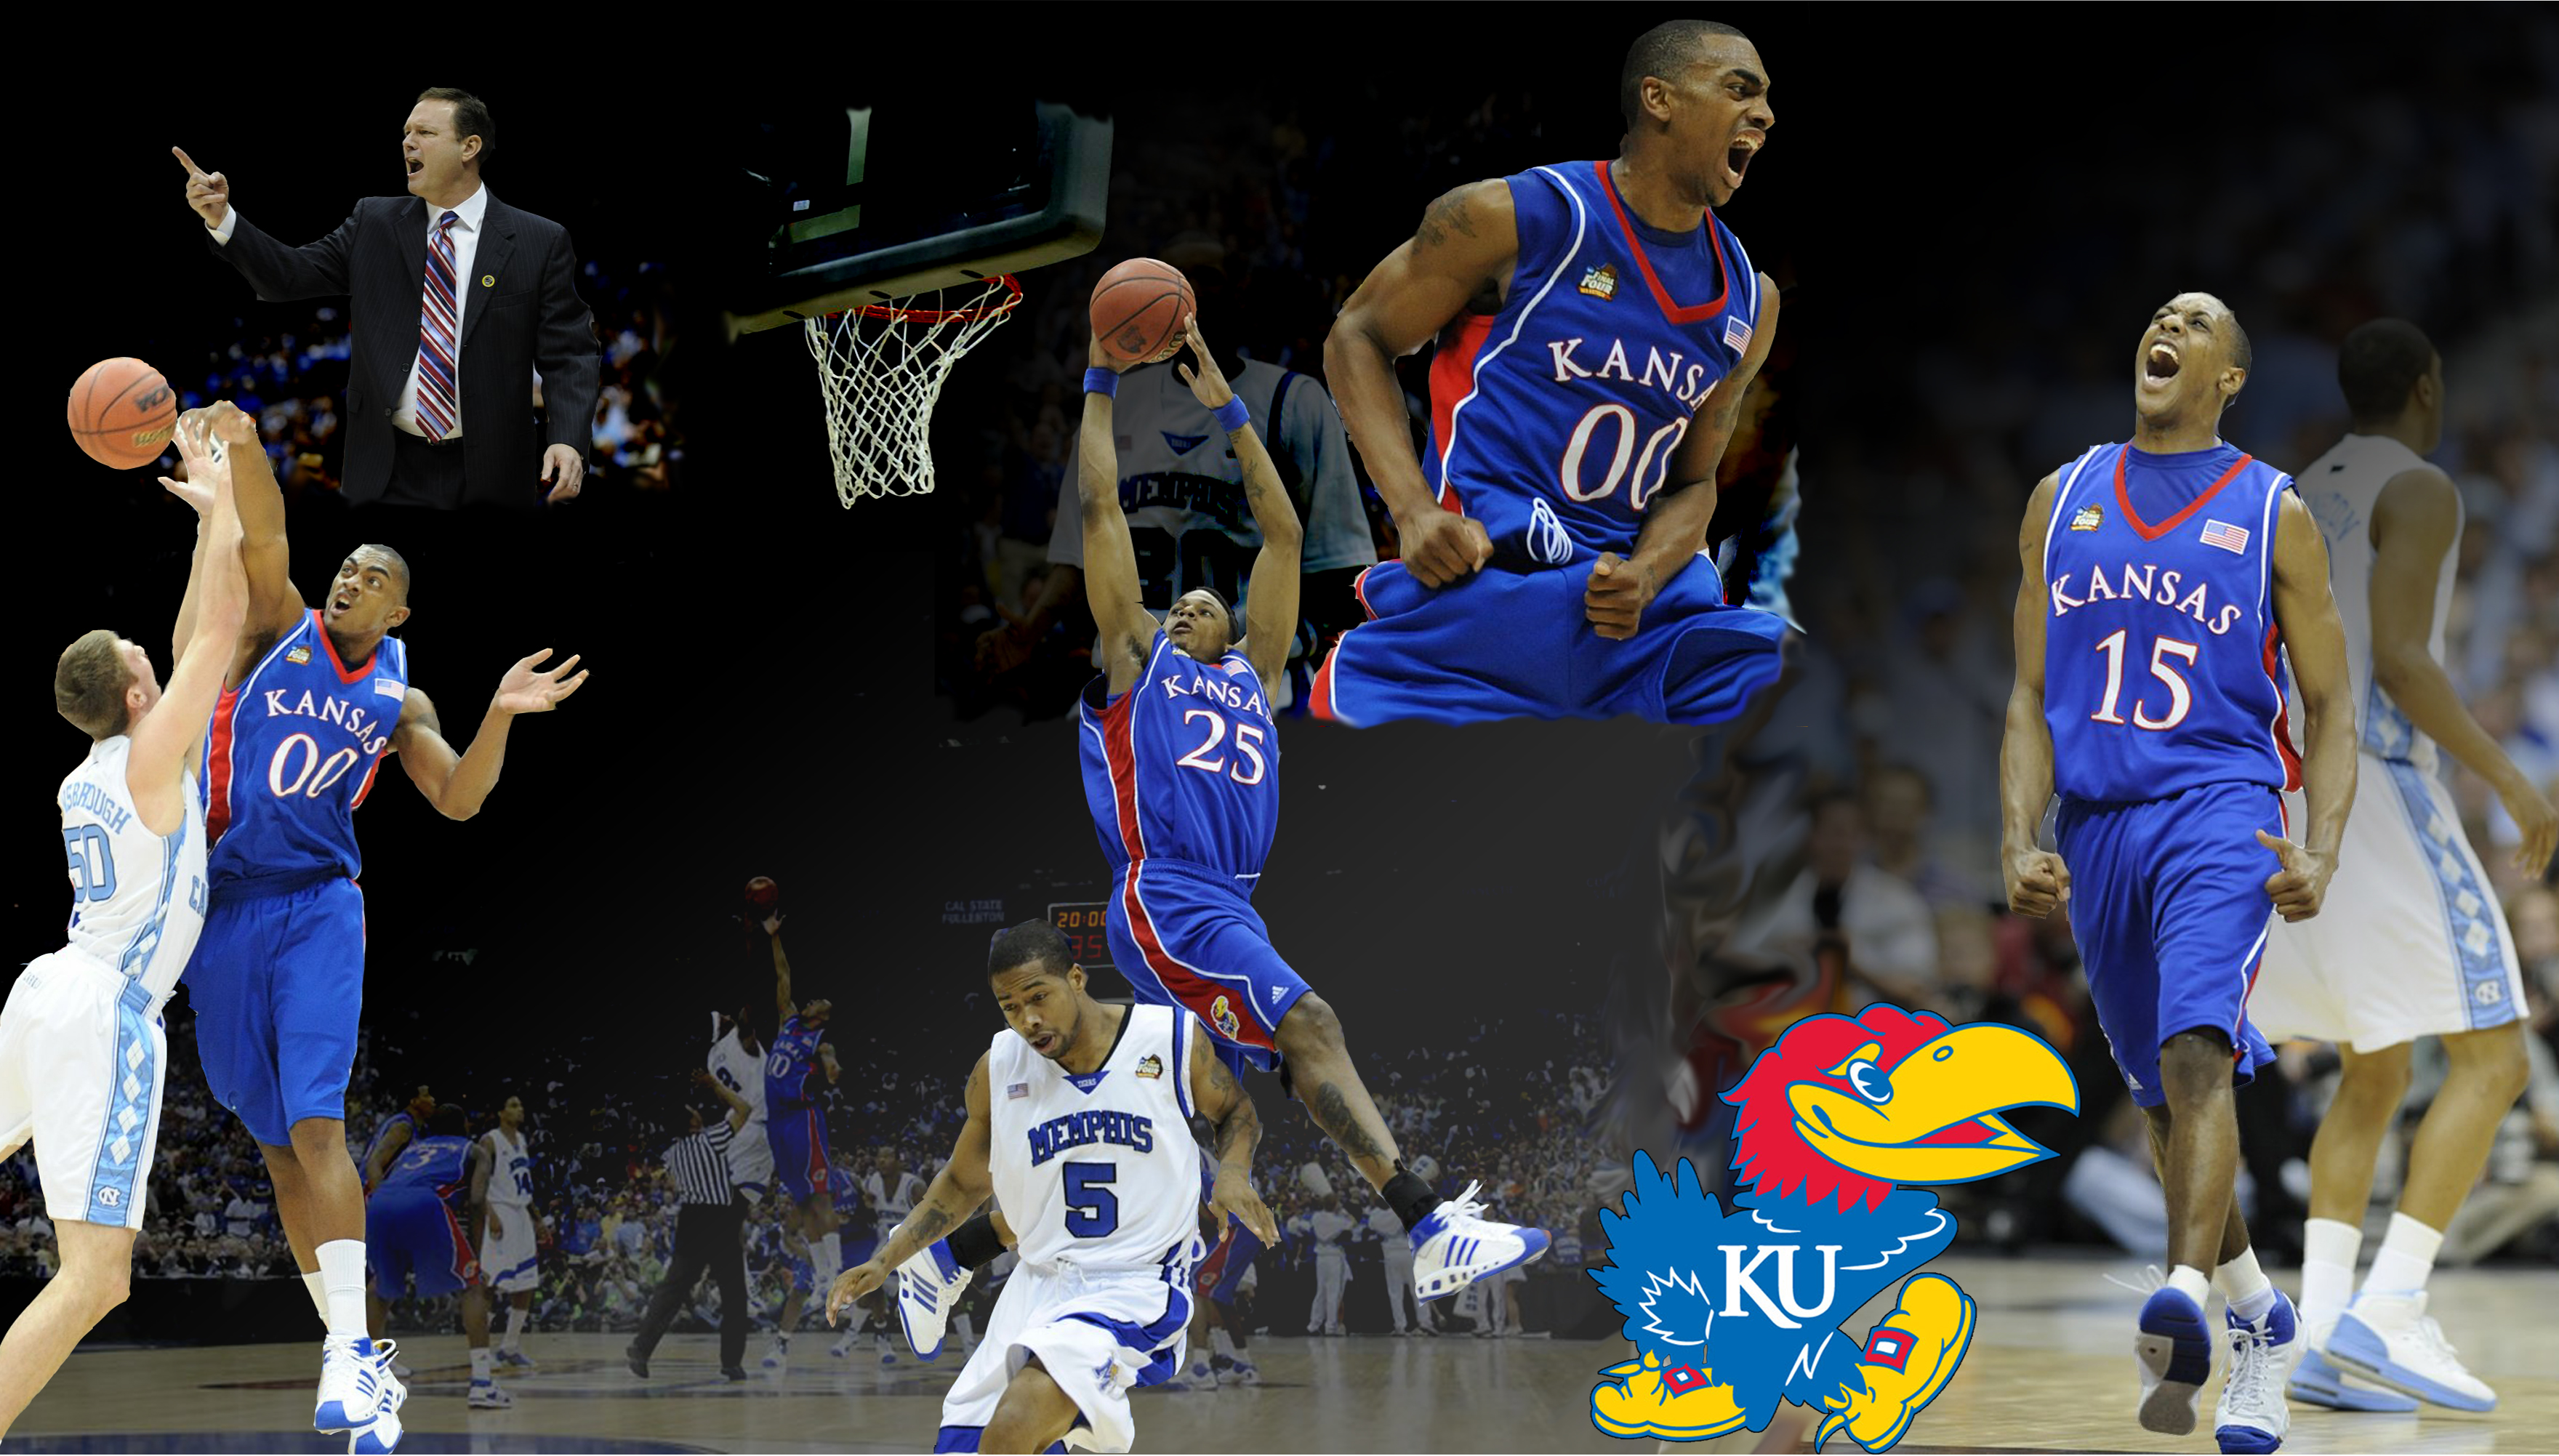 kansas jayhawks wallpaper